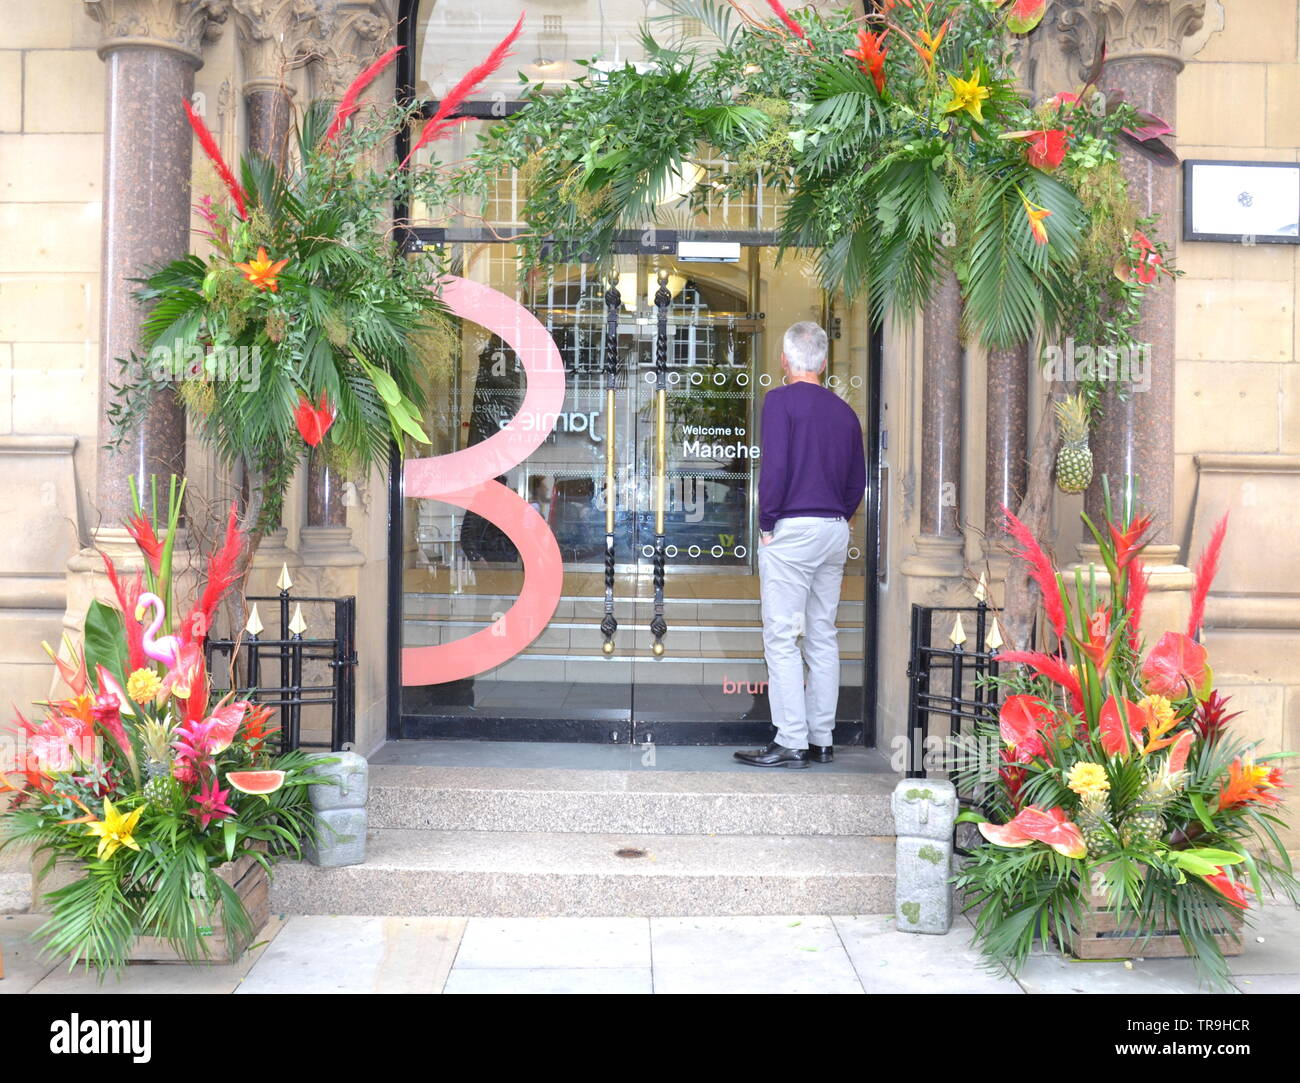 The Manchester Flower Show, part of Manchester's King Street  Festival on June 1st - 2nd, 2019, prepares to open. This year's theme:Flower Power!  A flower display decorates the entrance to an office building on King Sreet. - Stock Image